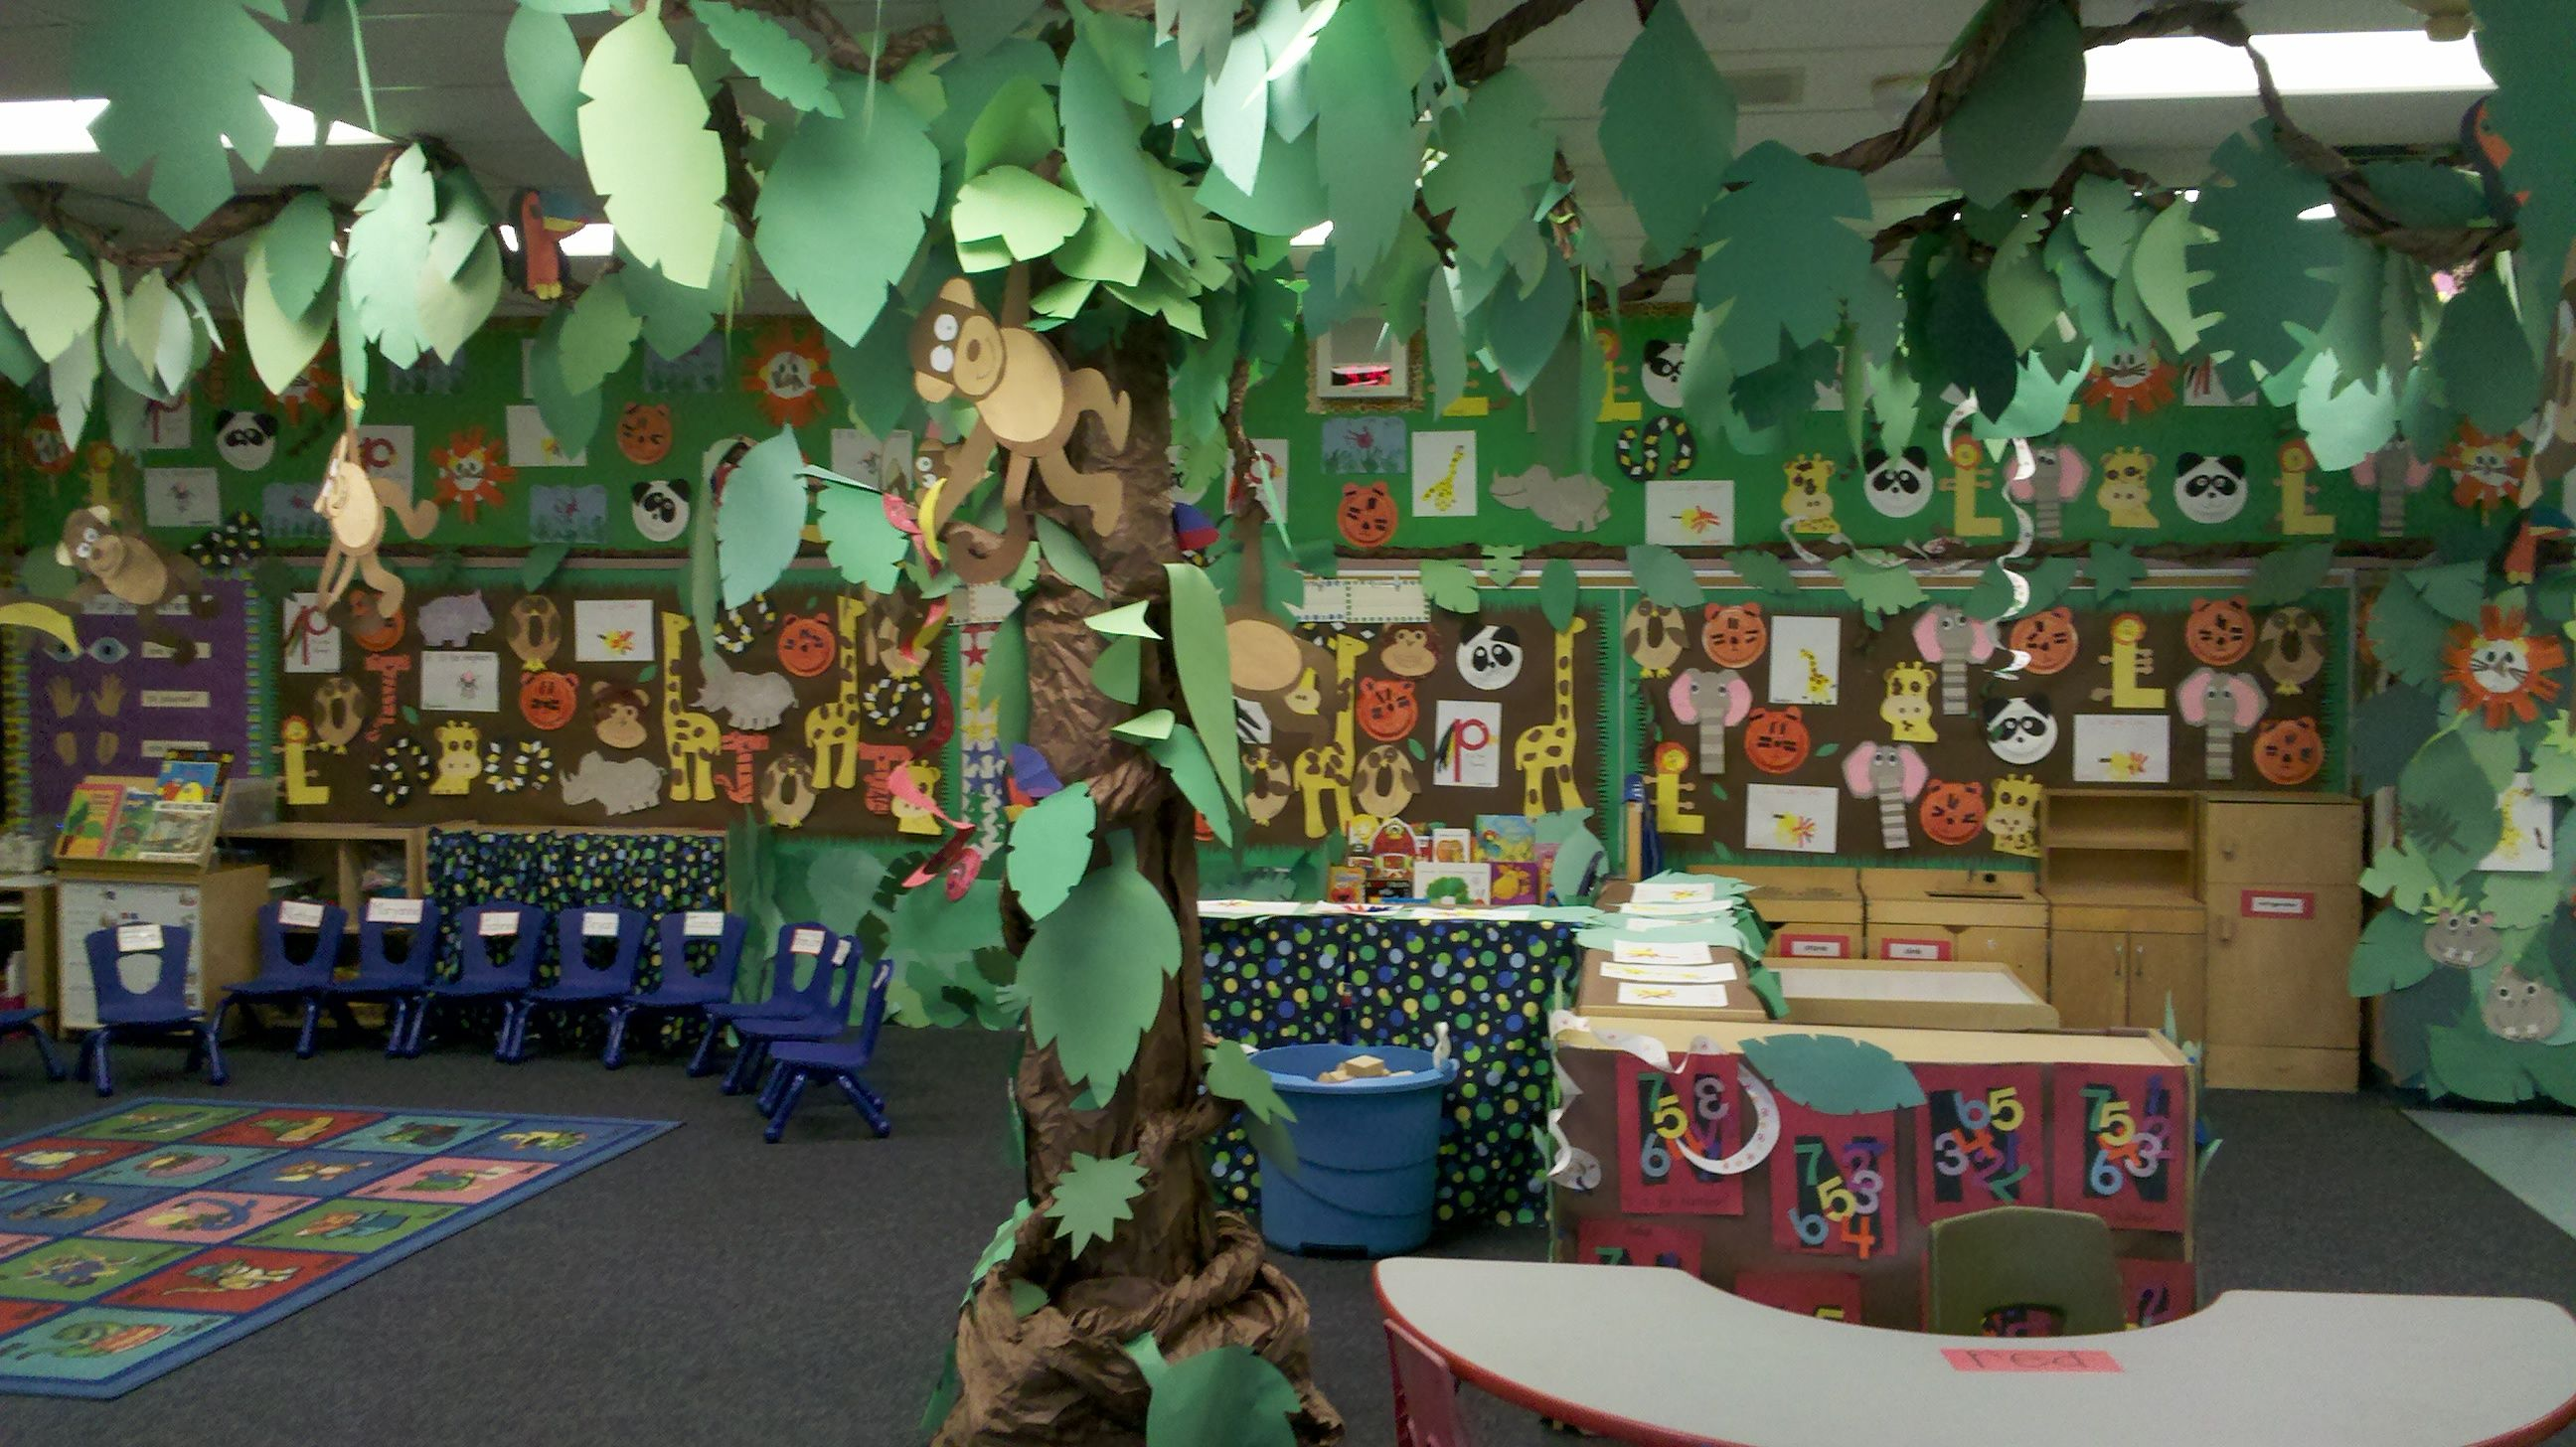 Jungle Classroom Decoration Ideas ~ Classroom decoration jungle theme day camp